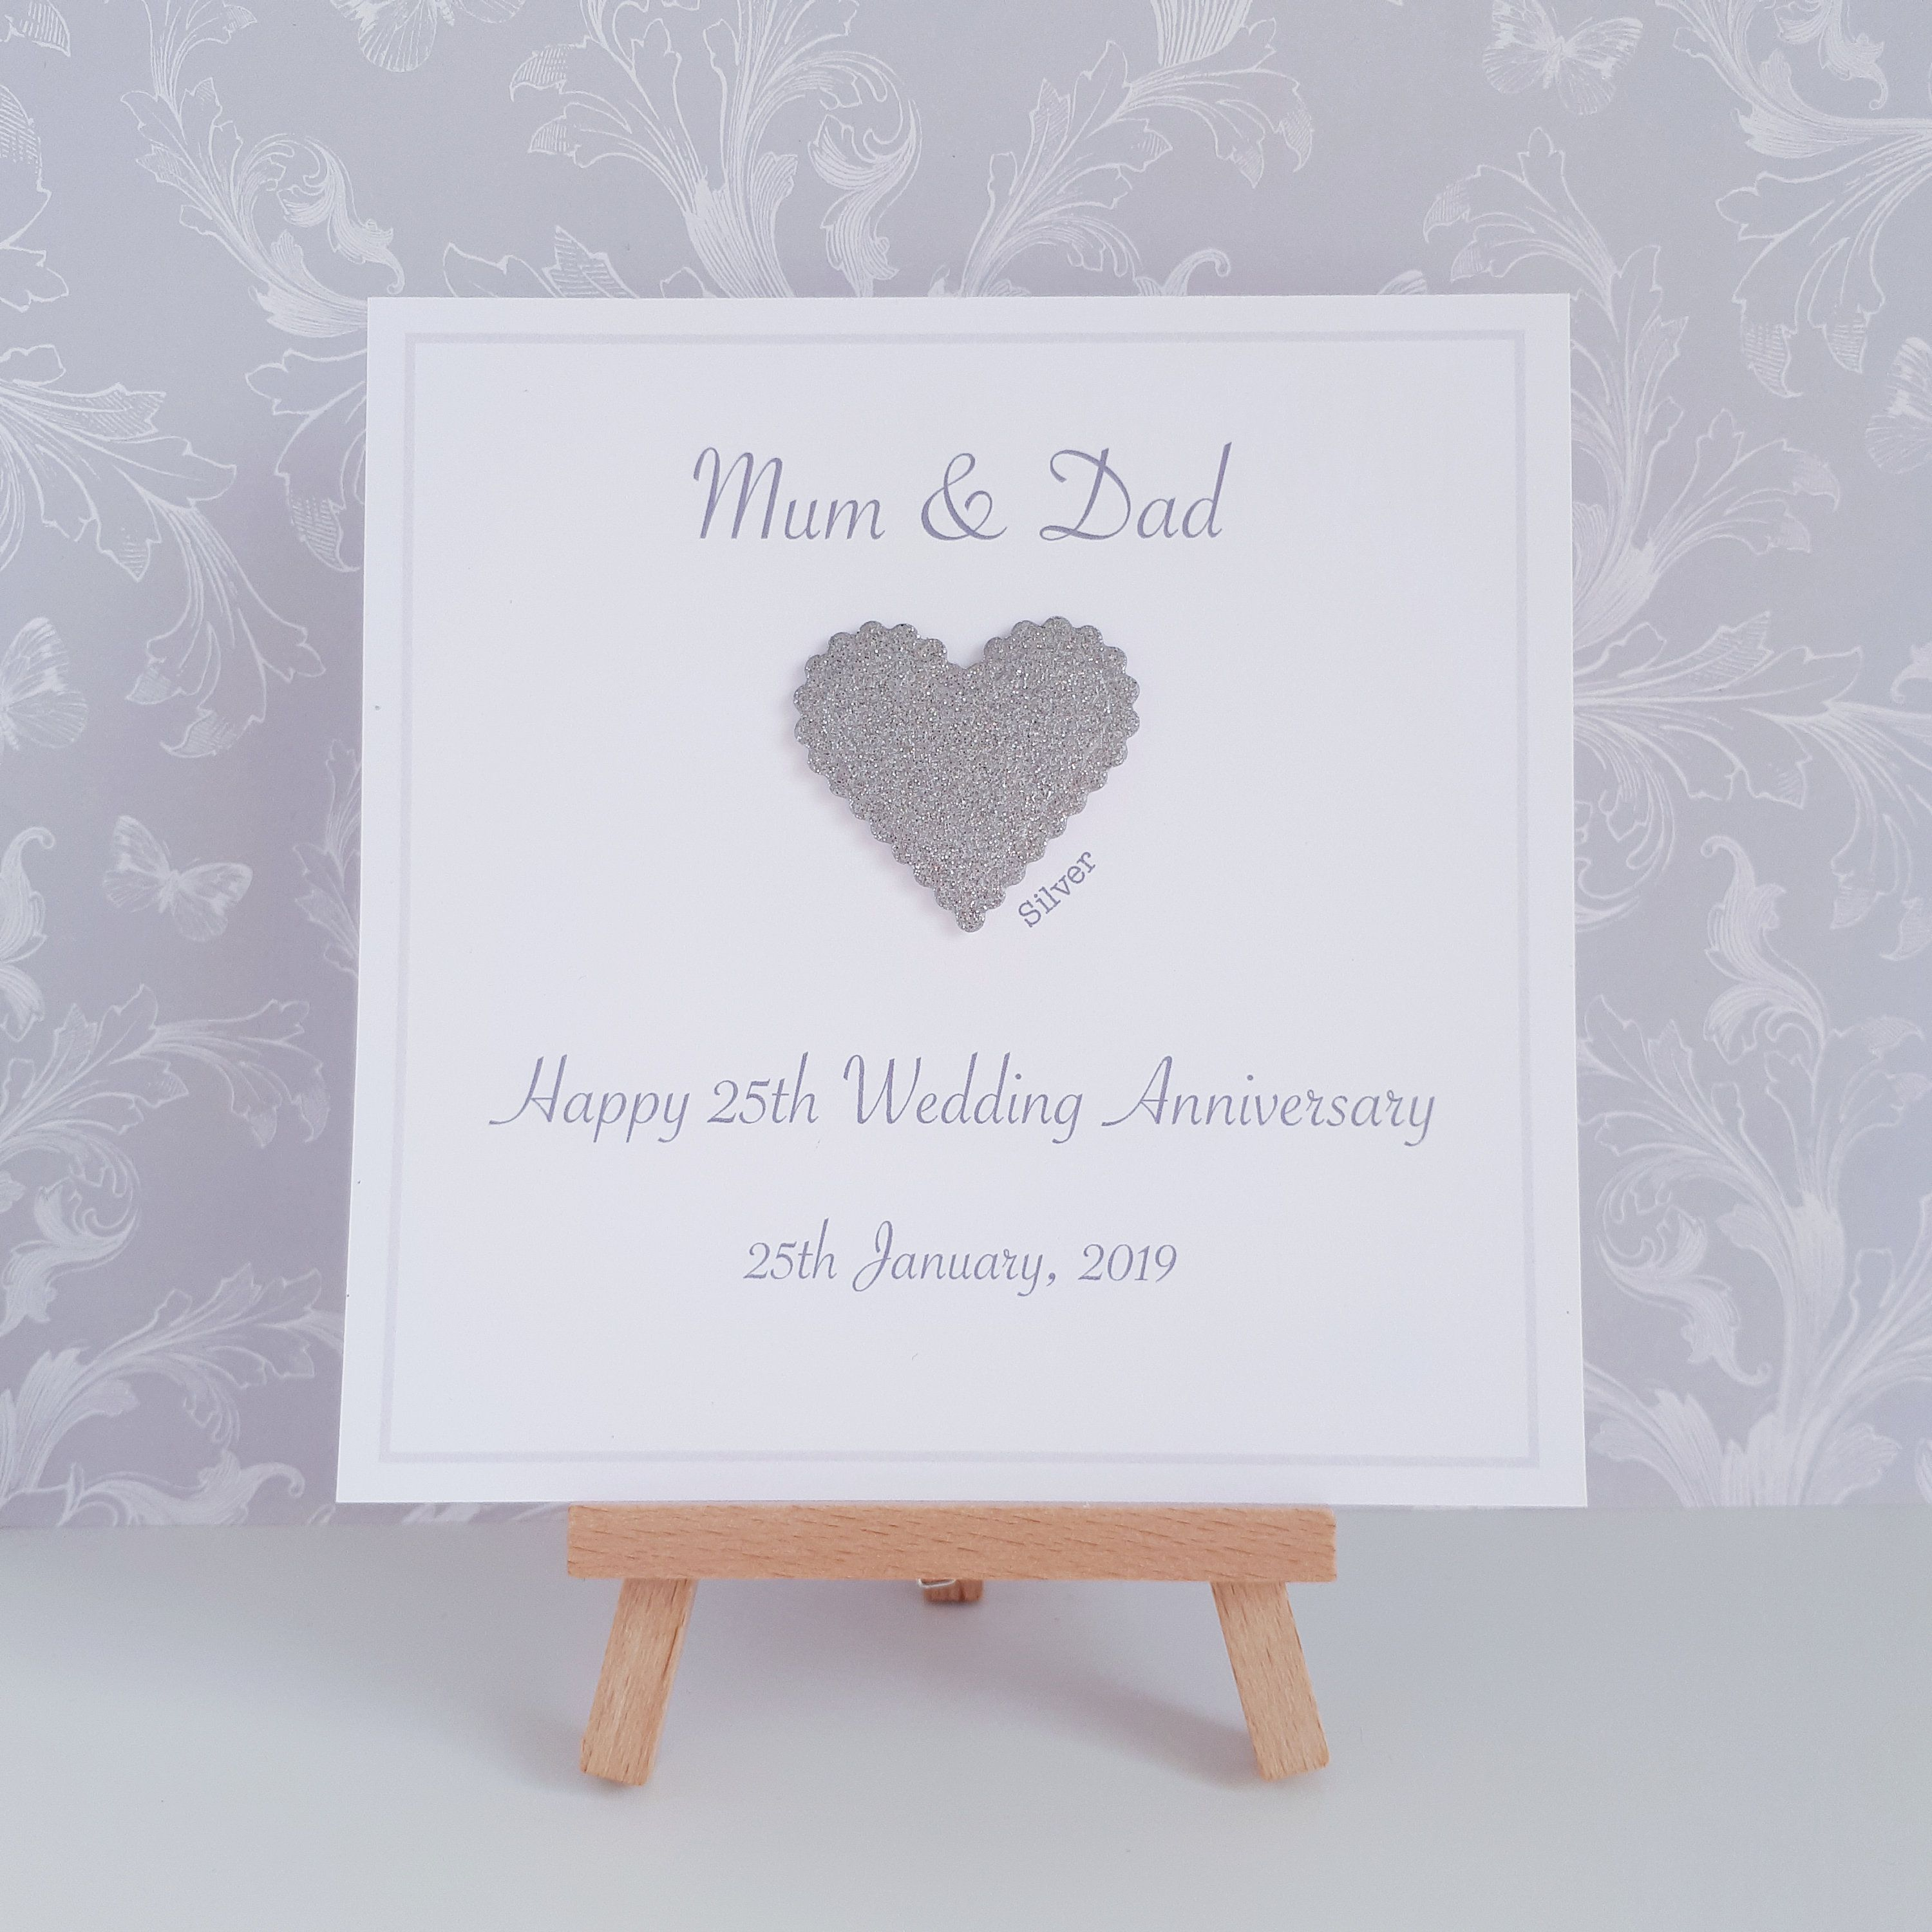 Handmade Personalised Silver 25th Wedding Anniversary Card For Parents Grand Anniversary Cards Handmade Anniversary Card For Parents Wedding Anniversary Cards